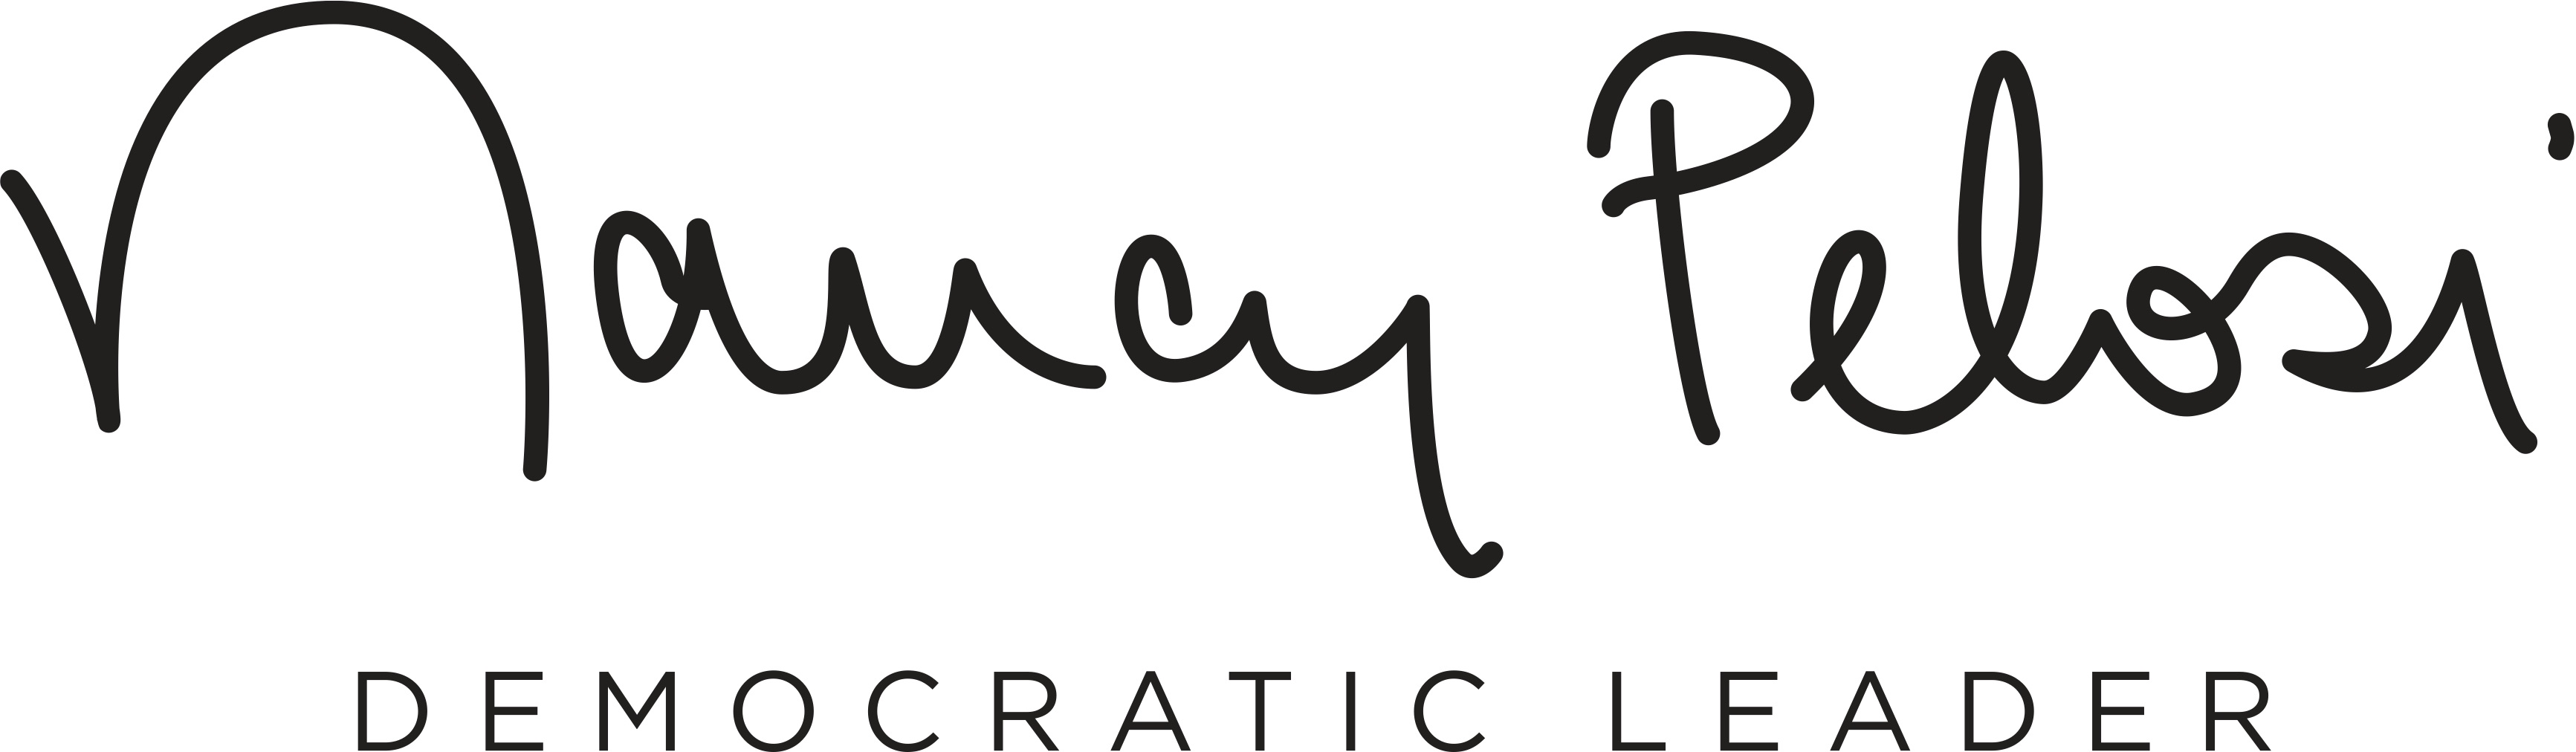 nancy_pelosi_signature_logo.jpg